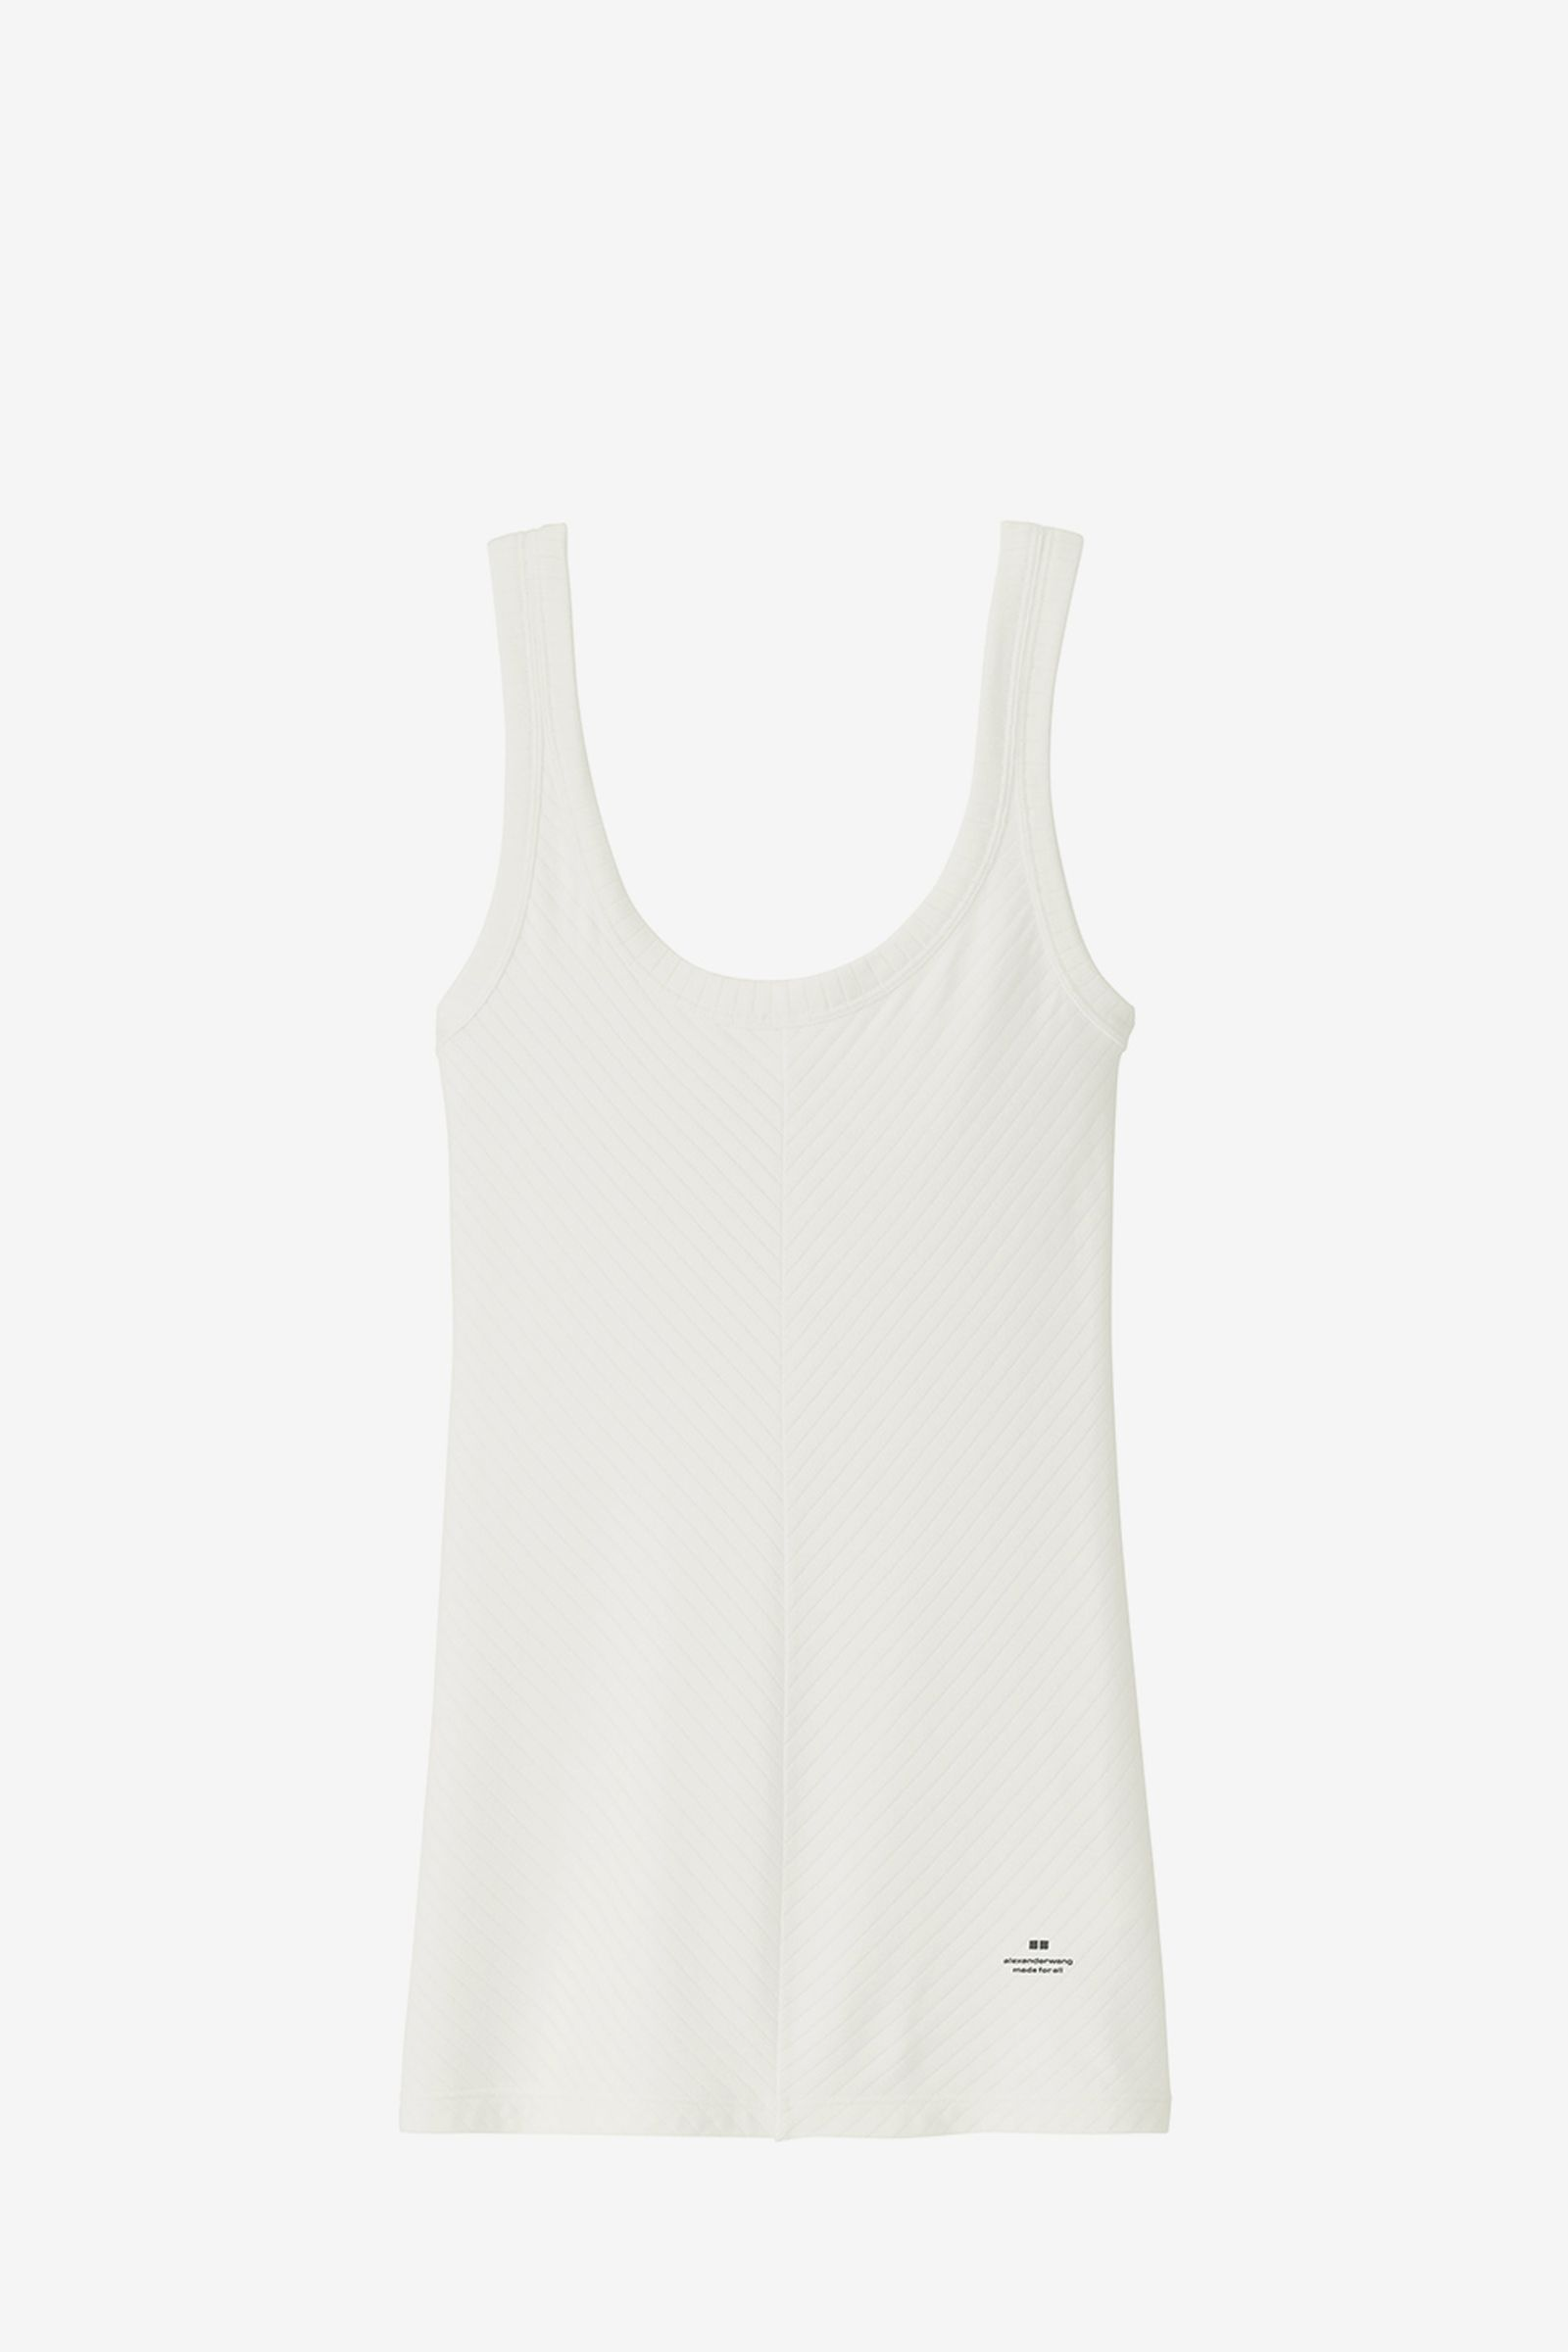 alexander wang uniqlo fw18 collection womens